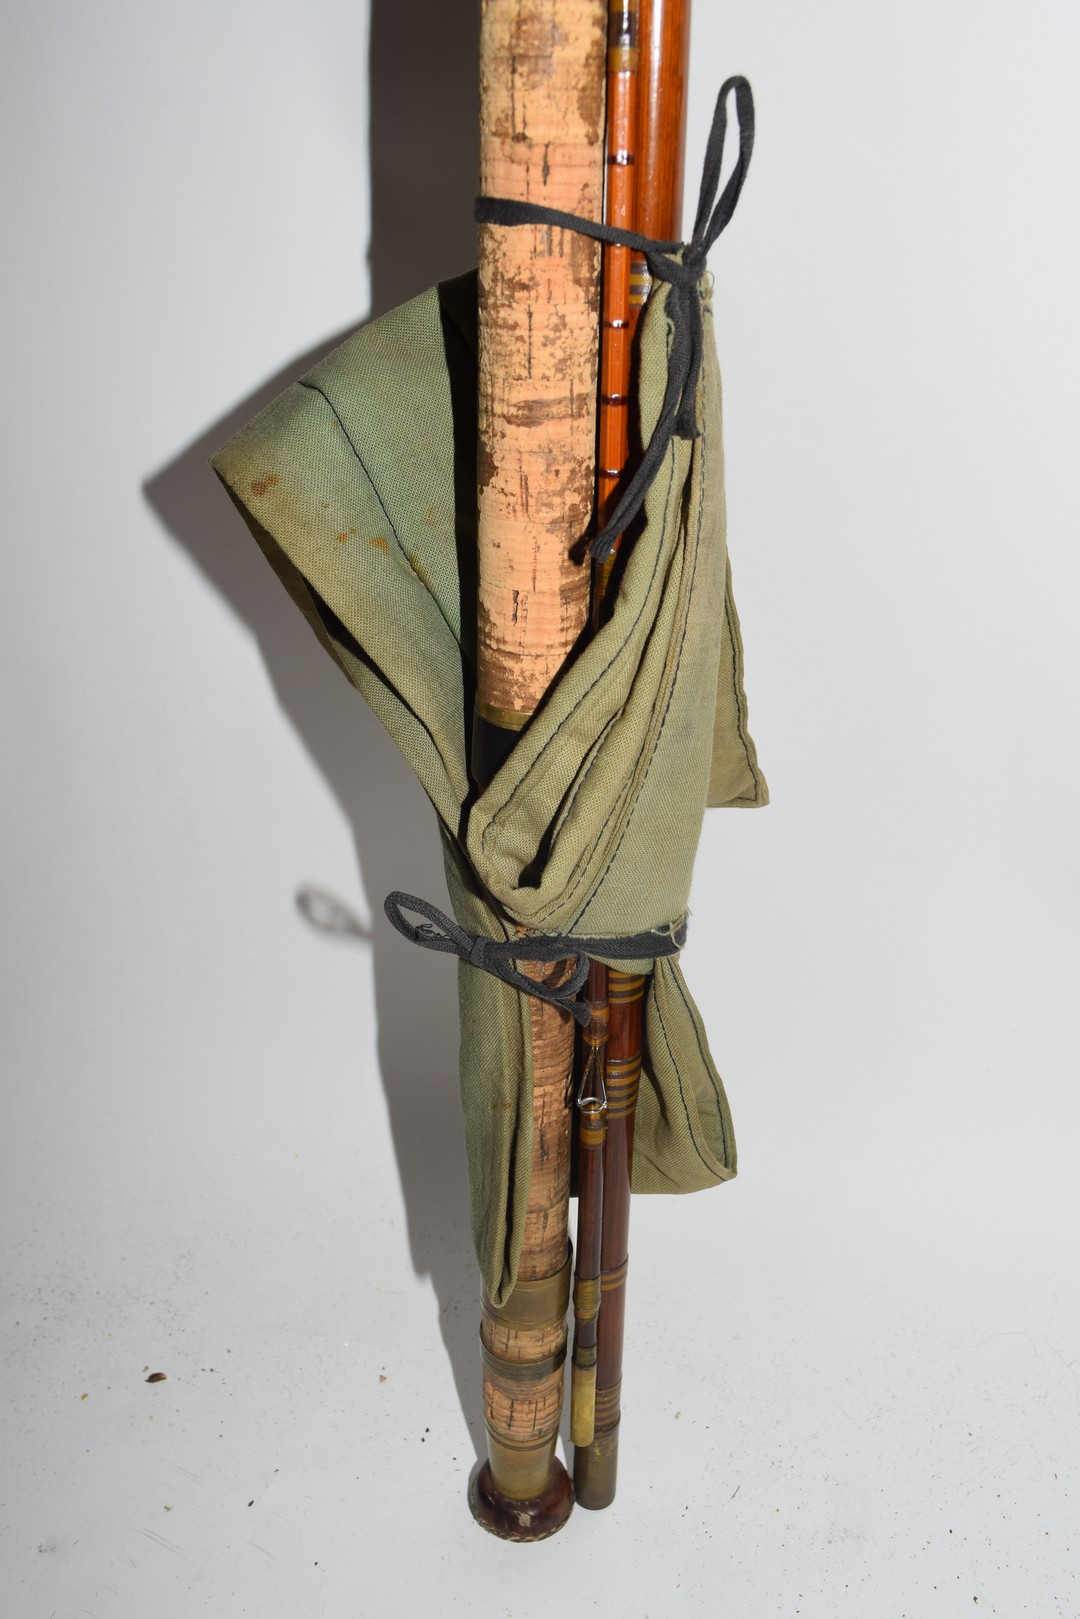 Vintage three-piece fibre glass and cane fishing rod - Image 2 of 4